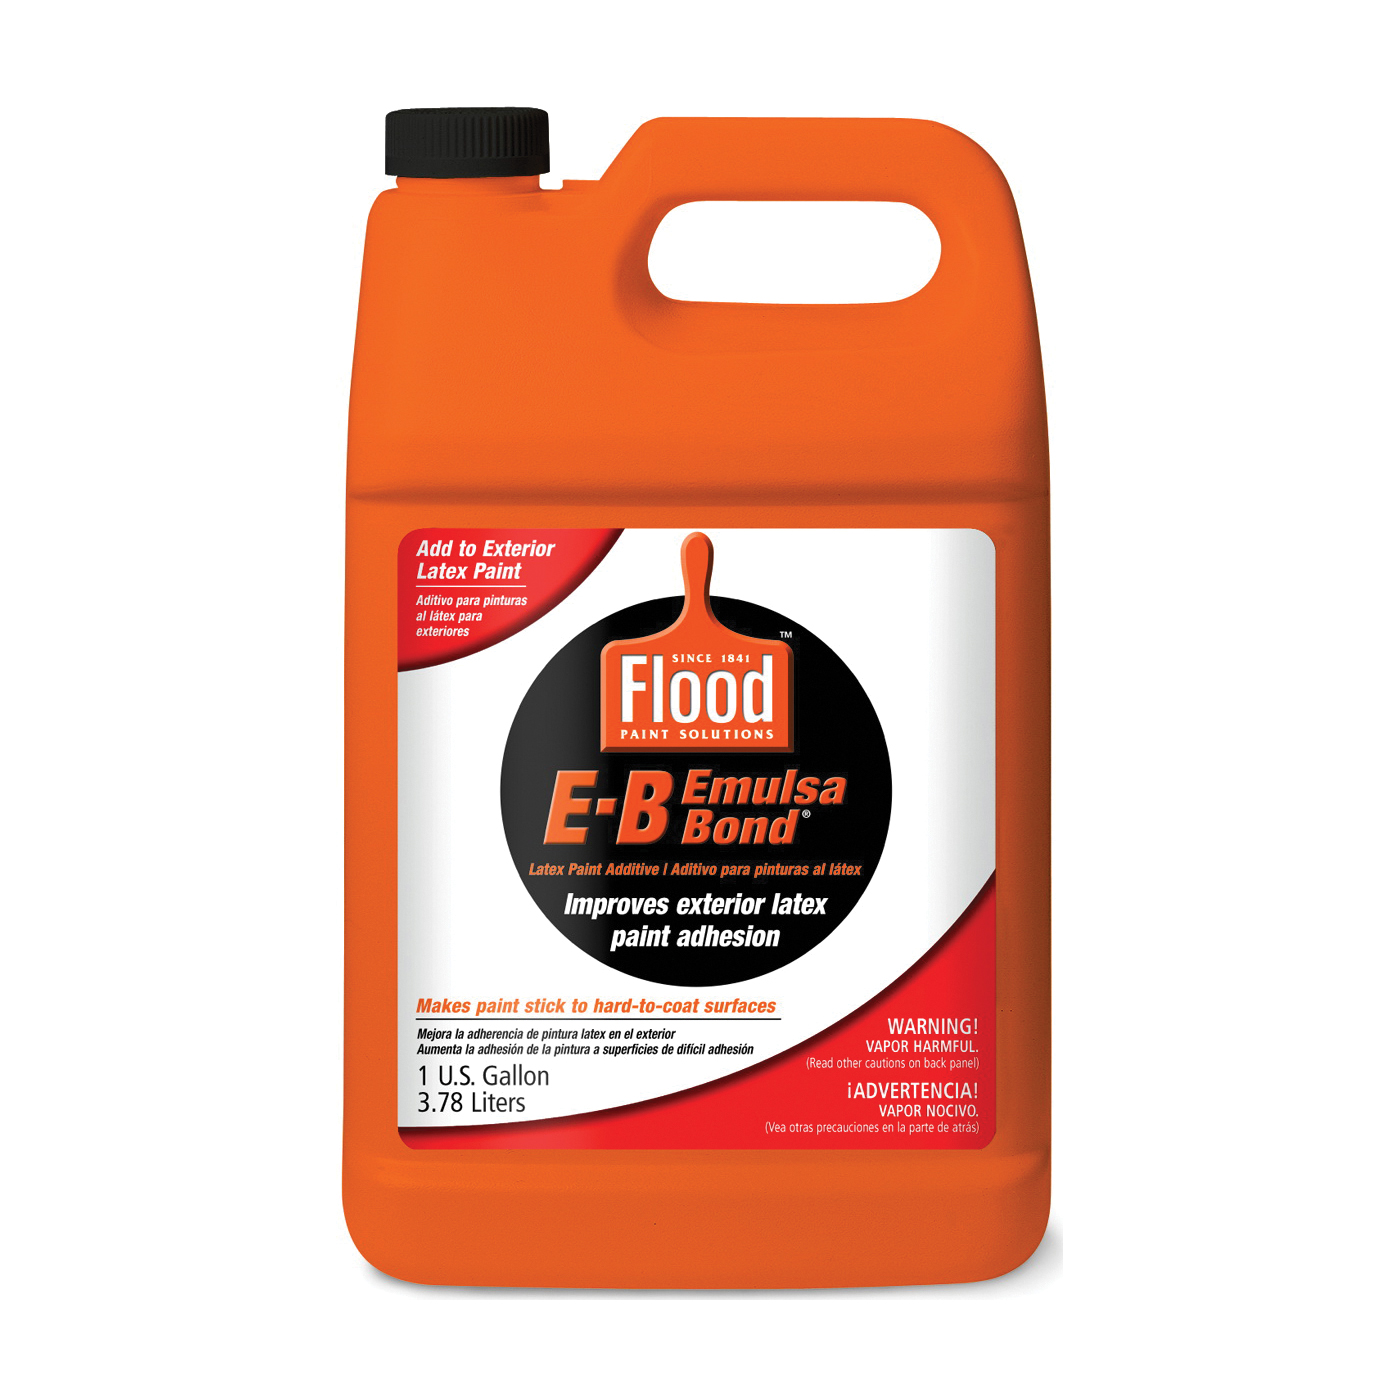 Picture of Flood FLD4 Oil-Based Paint Additive, Clear, Liquid, 1 gal, Can